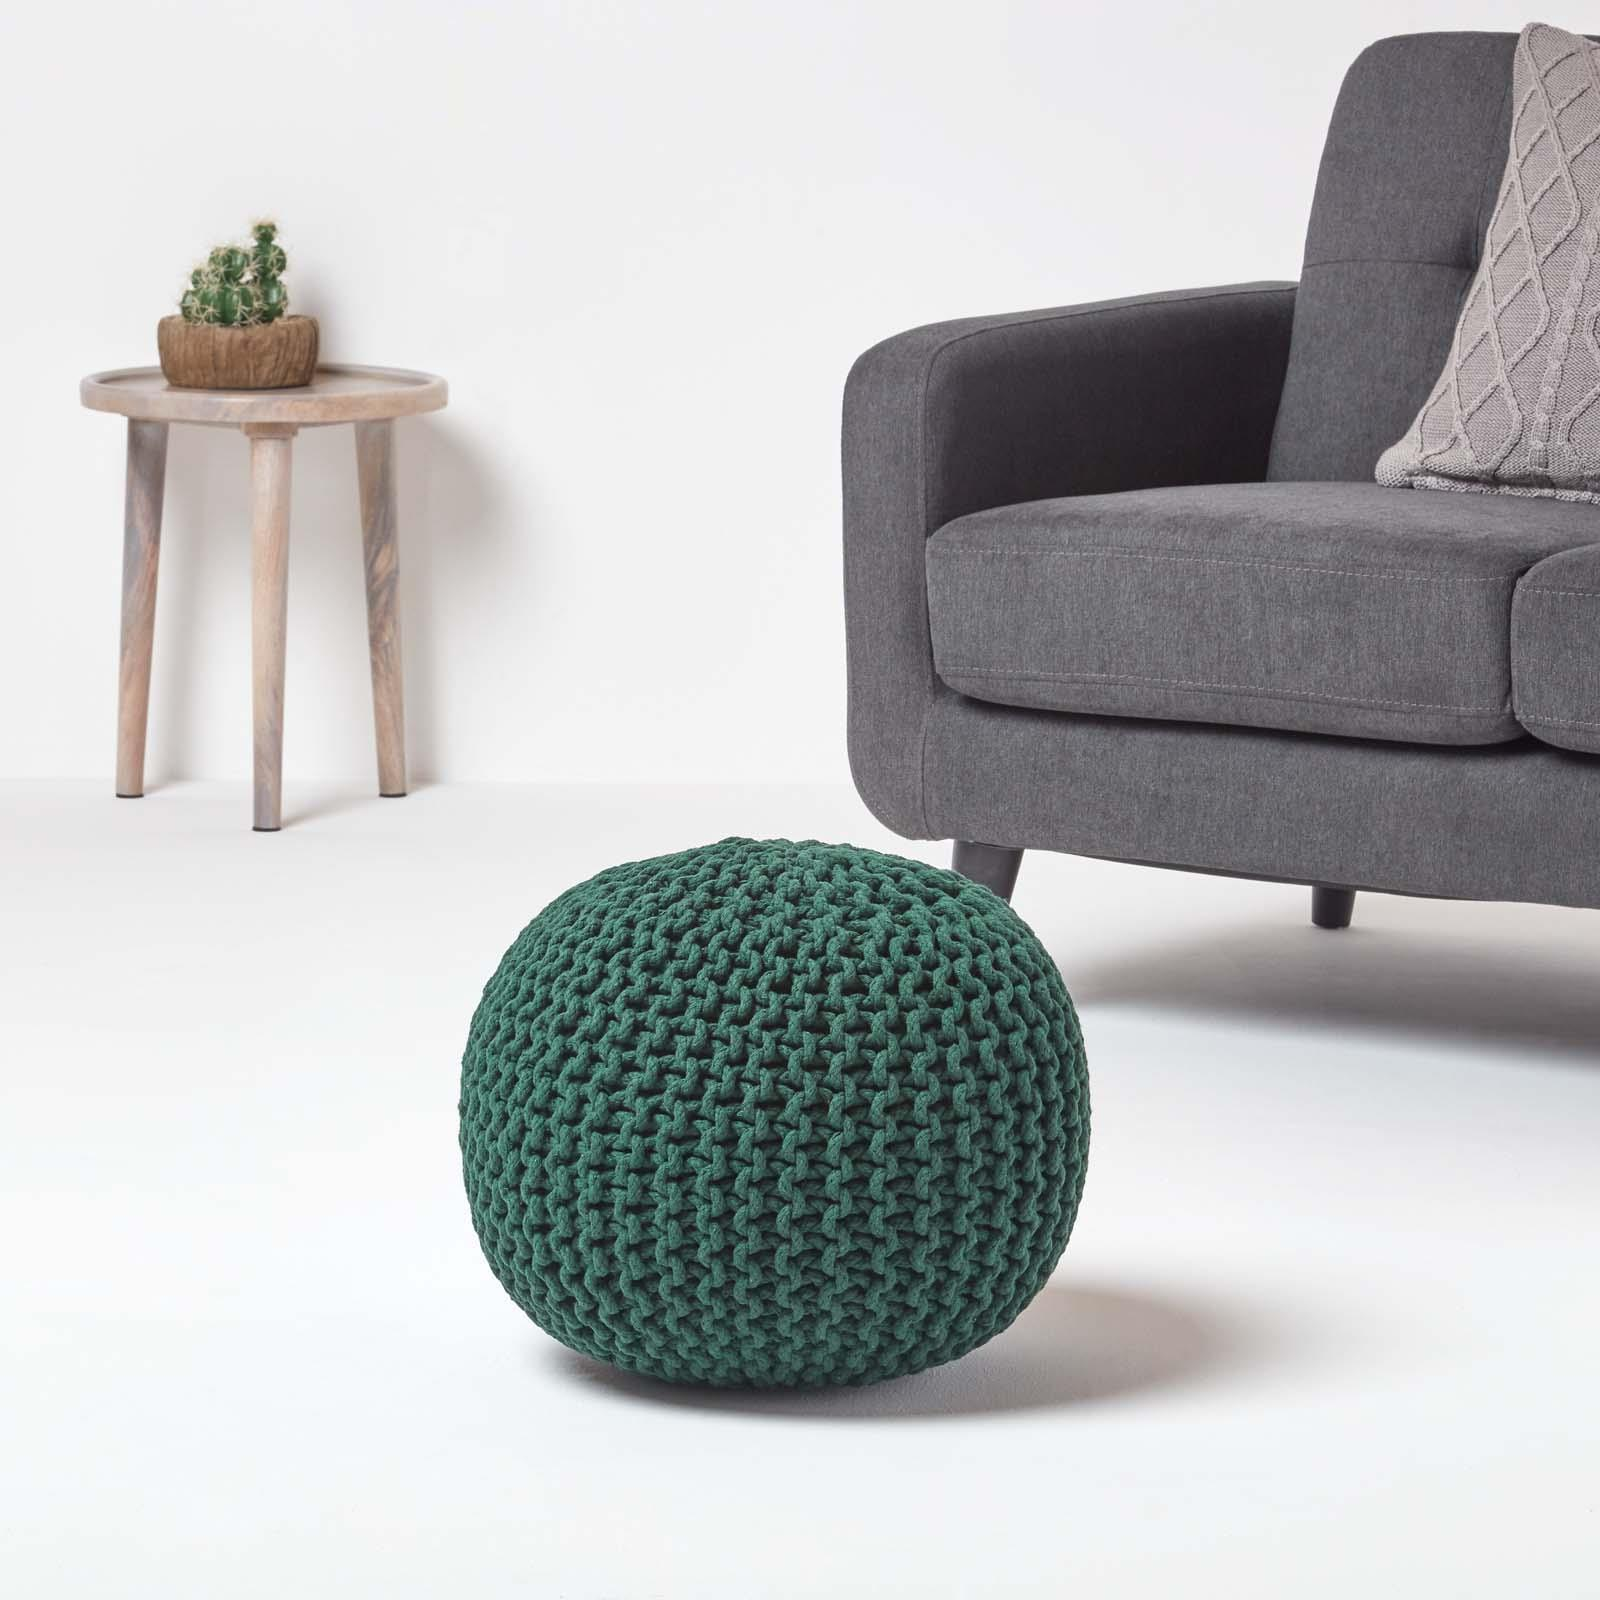 Hand-Knitted-100-Cotton-Pouffes-Round-Sphere-Or-Cube-Square-Chunky-Footstools thumbnail 45